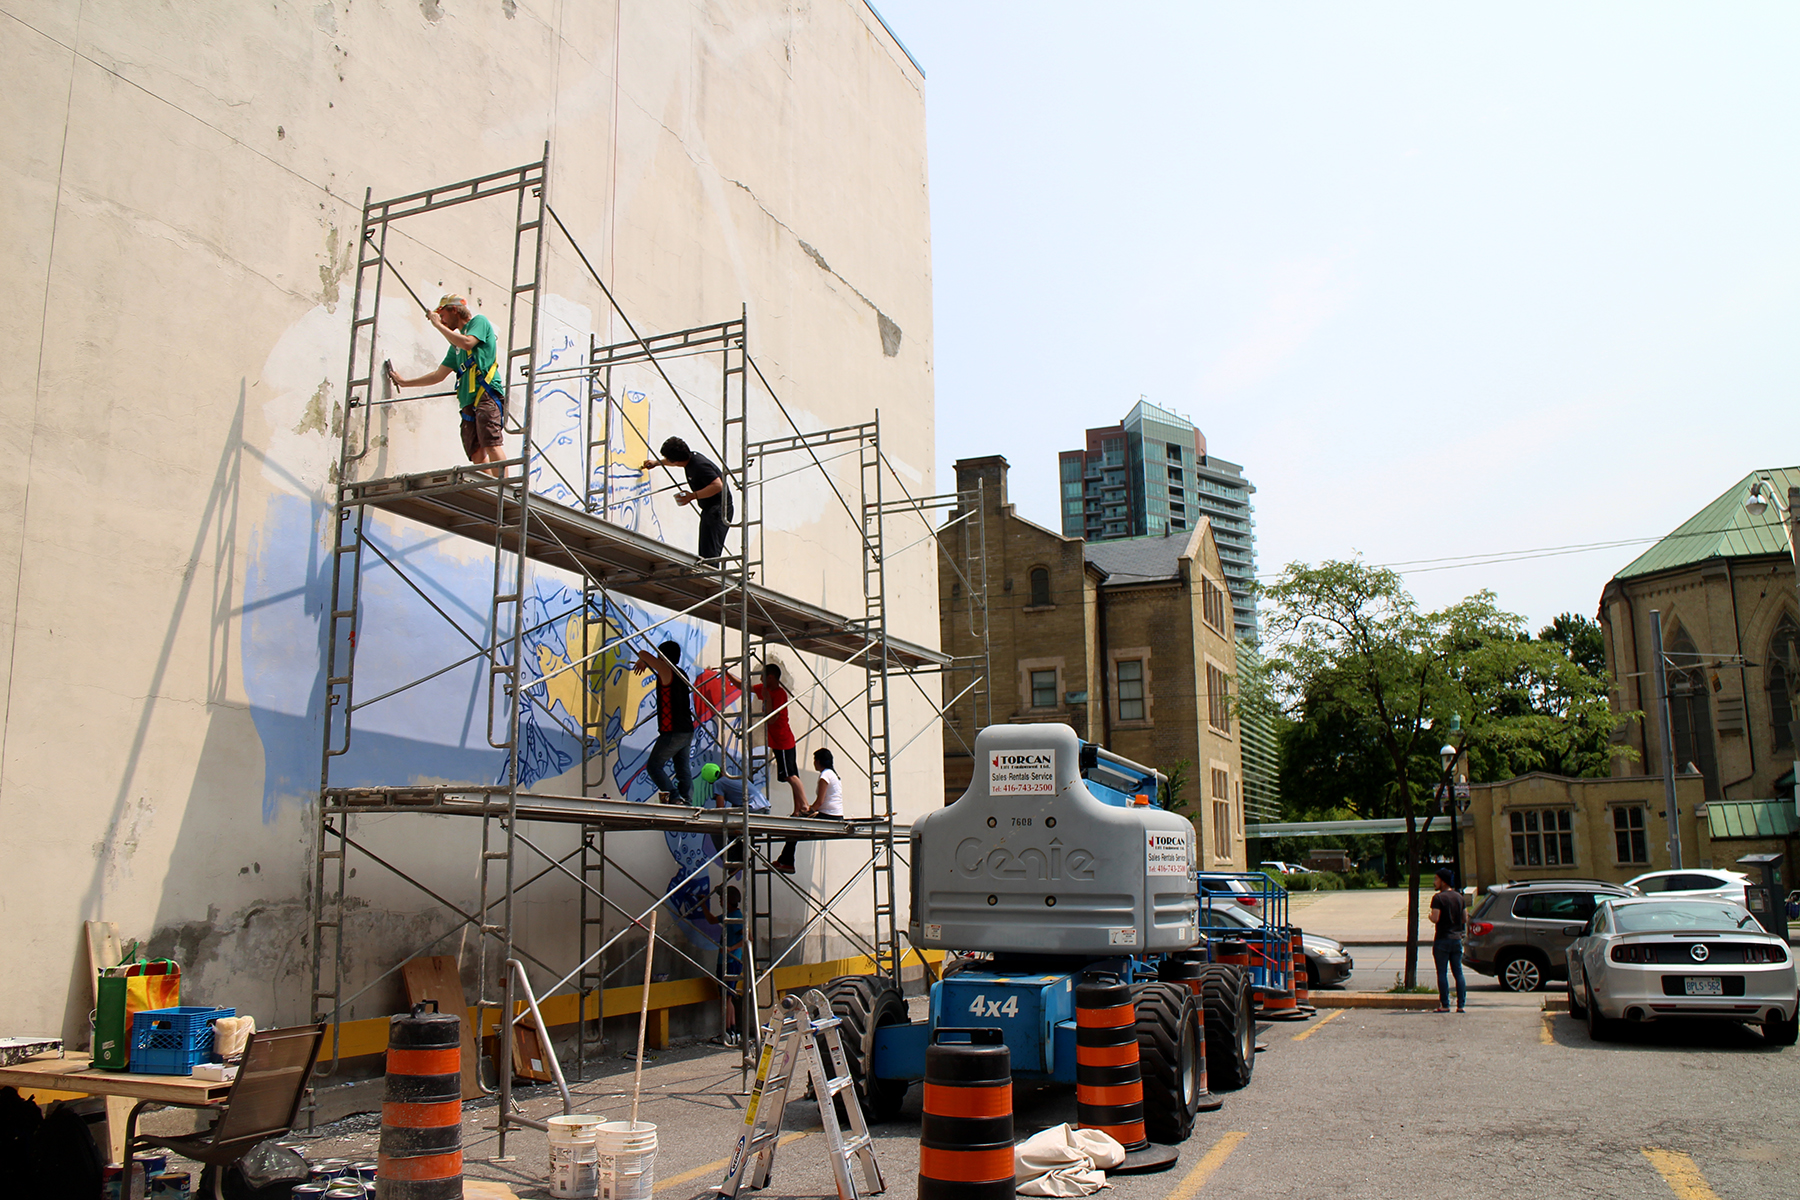 Painting two stories above the ground. Photo by Alexa Hatanaka.